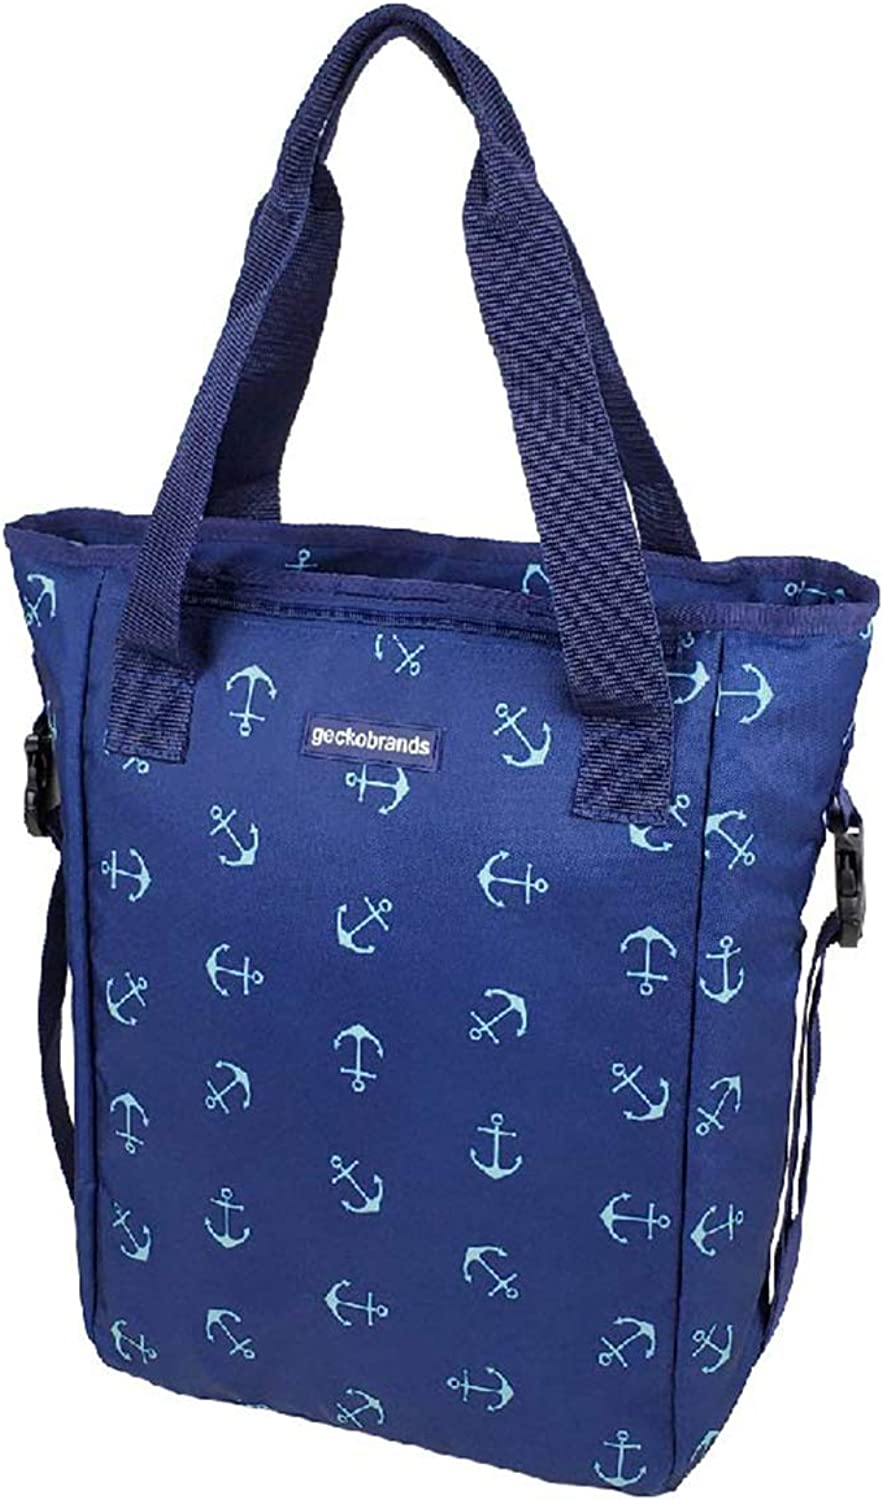 6 Patterns Available geckobrands/2 in 1 Convertible Tote/and/Backpack